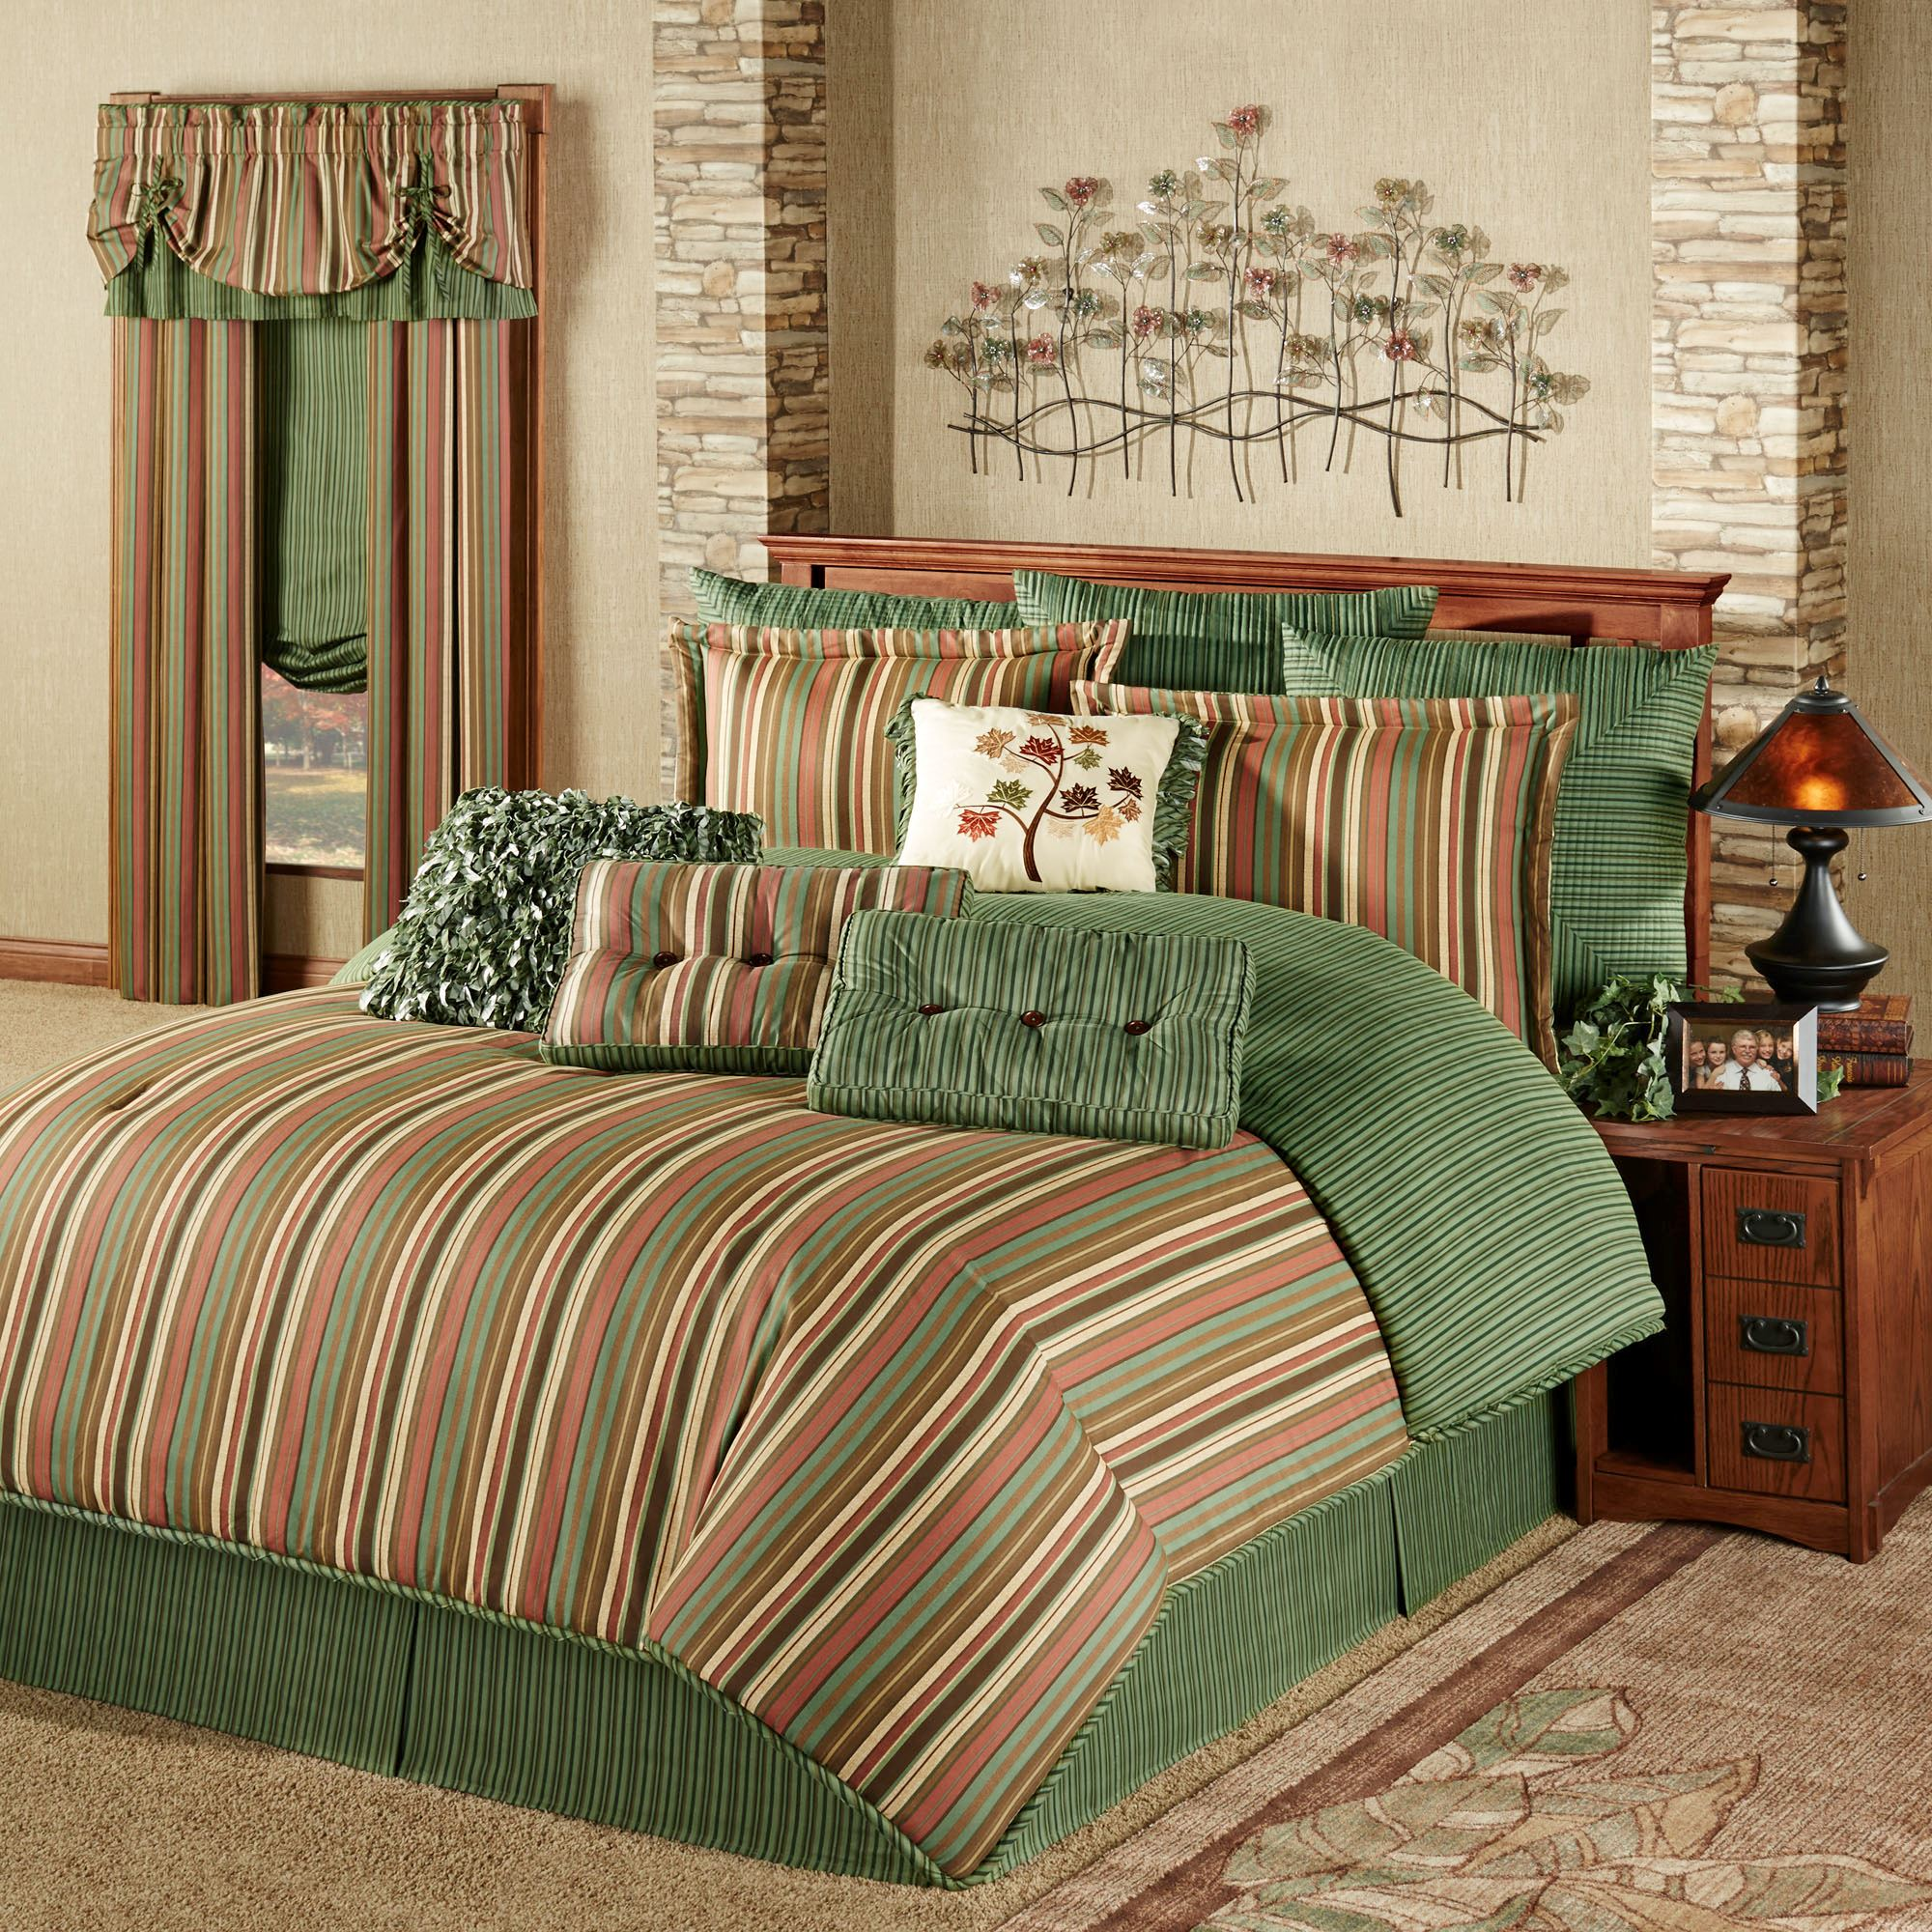 queen stripe interior white comforter chevron set canada comforters red target navy black and striped blue twin royal sets kohls floral tiffany